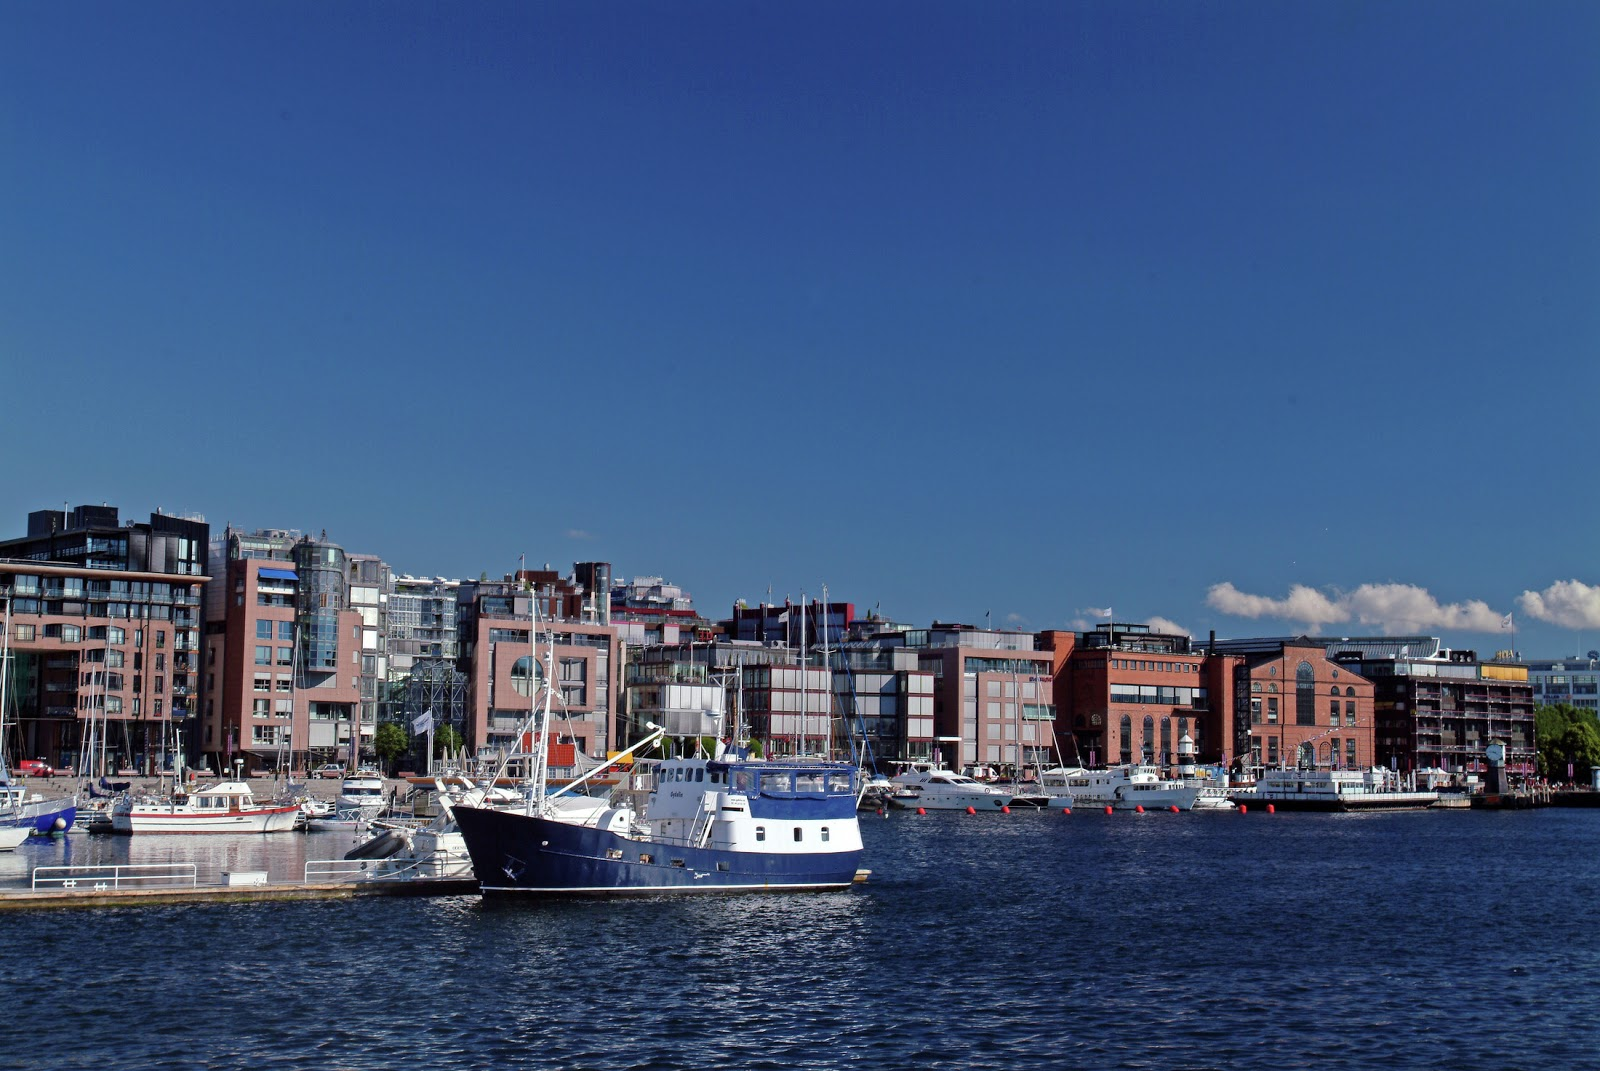 The vibrant shopping district of Aker Brygge as seen from Oslofjord. Photo © Nancy Bundt and VisitNorway.com. Unauthorized use is prohibited.